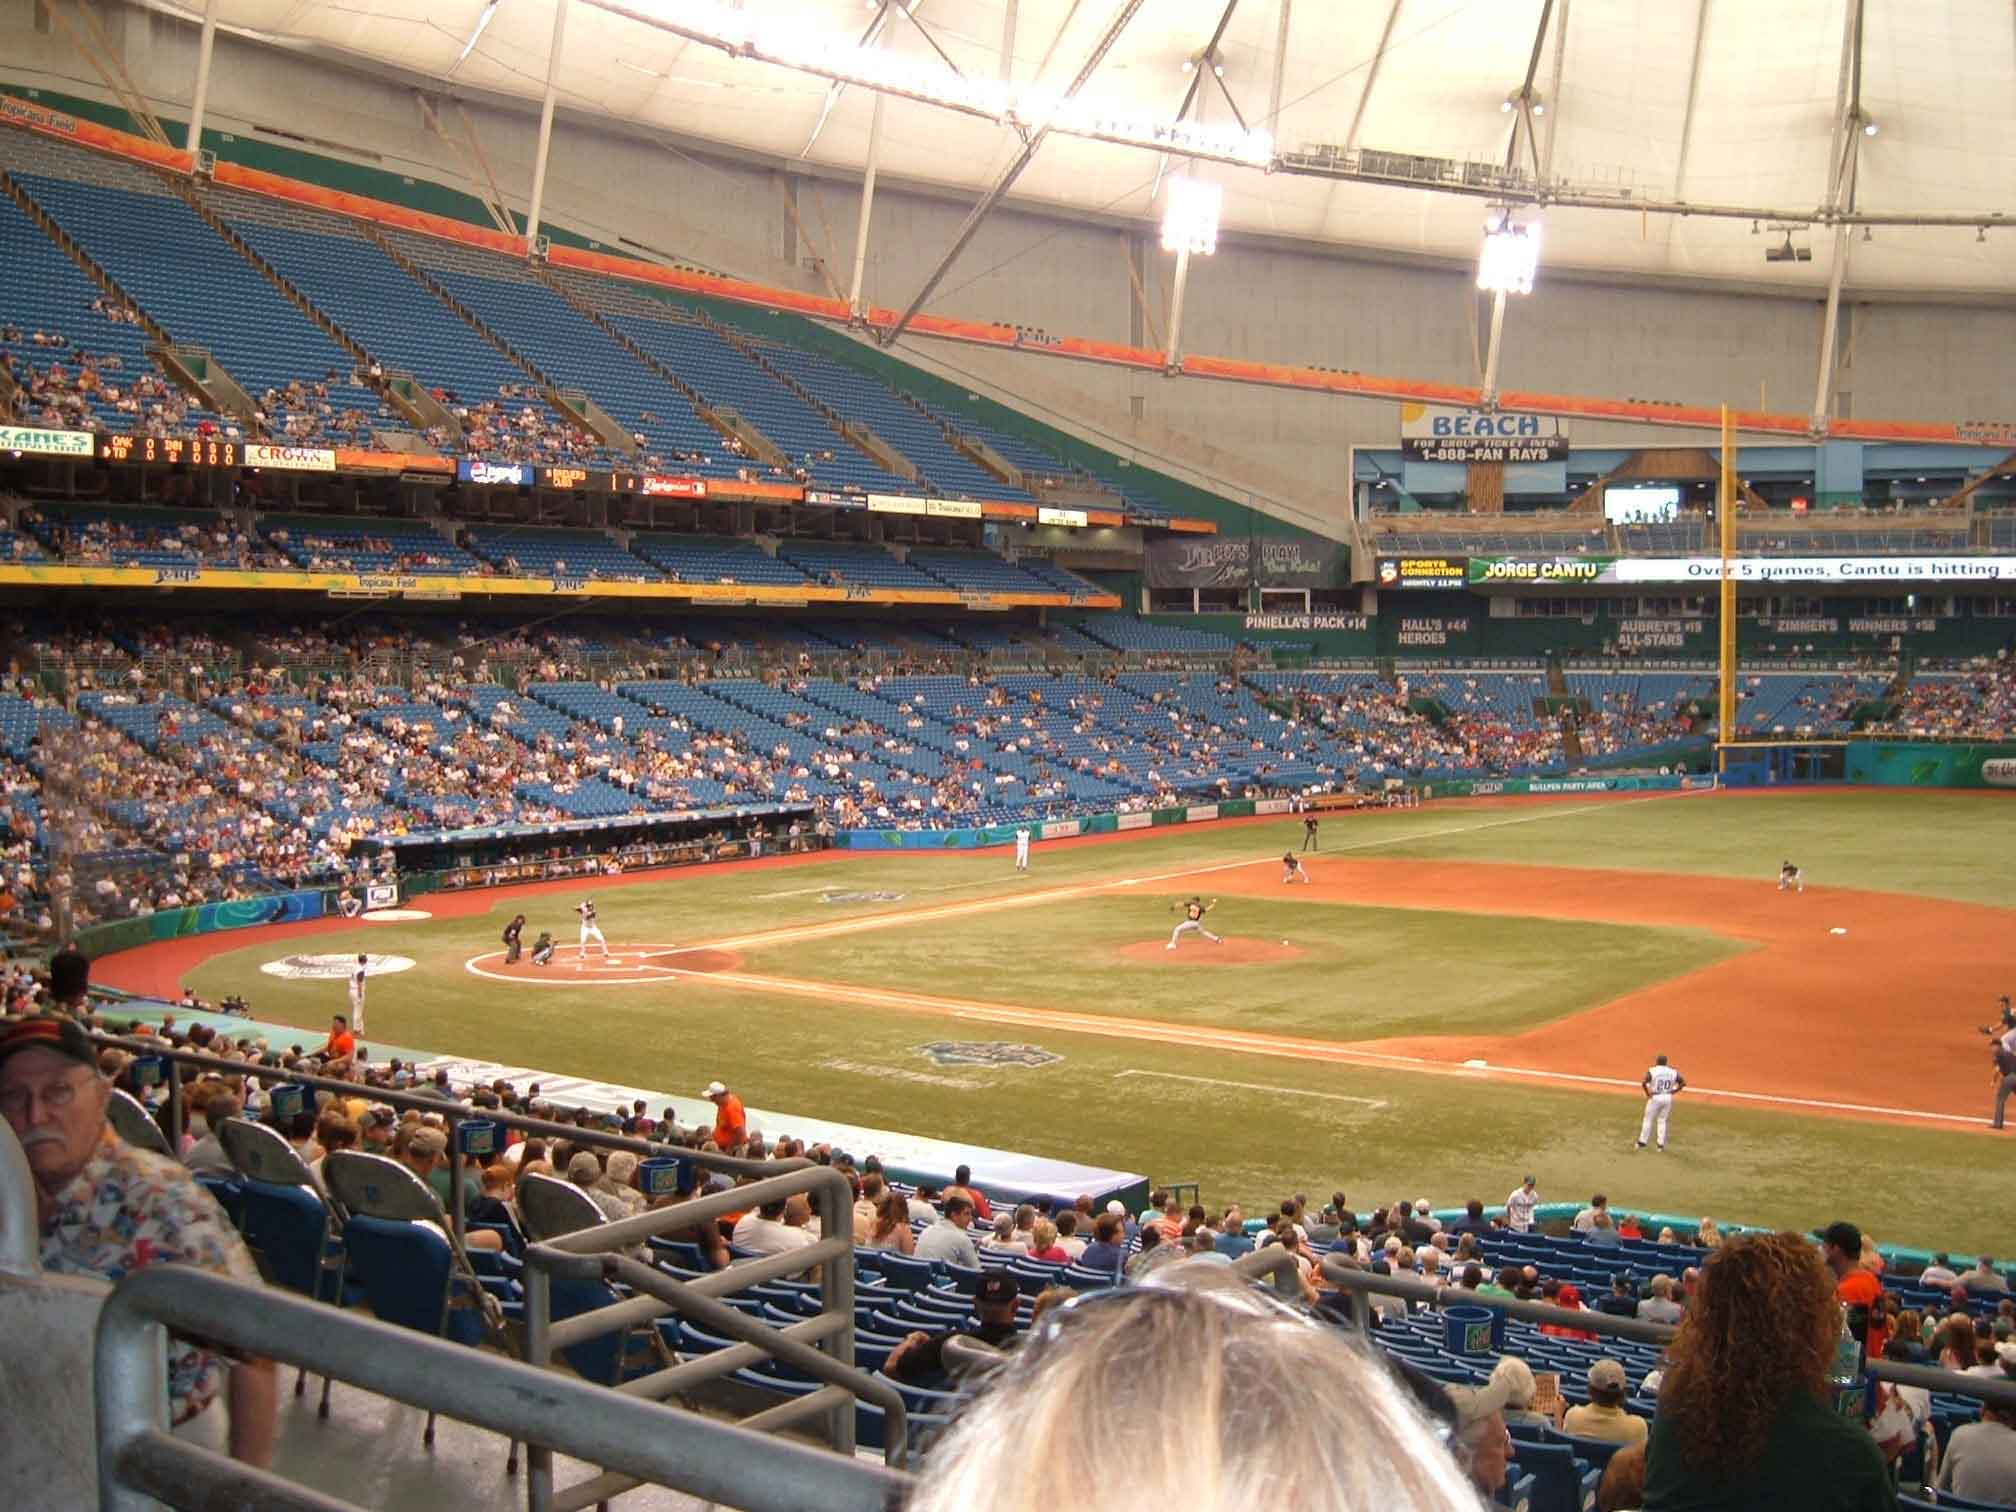 Best Beach Near Tropicana Field